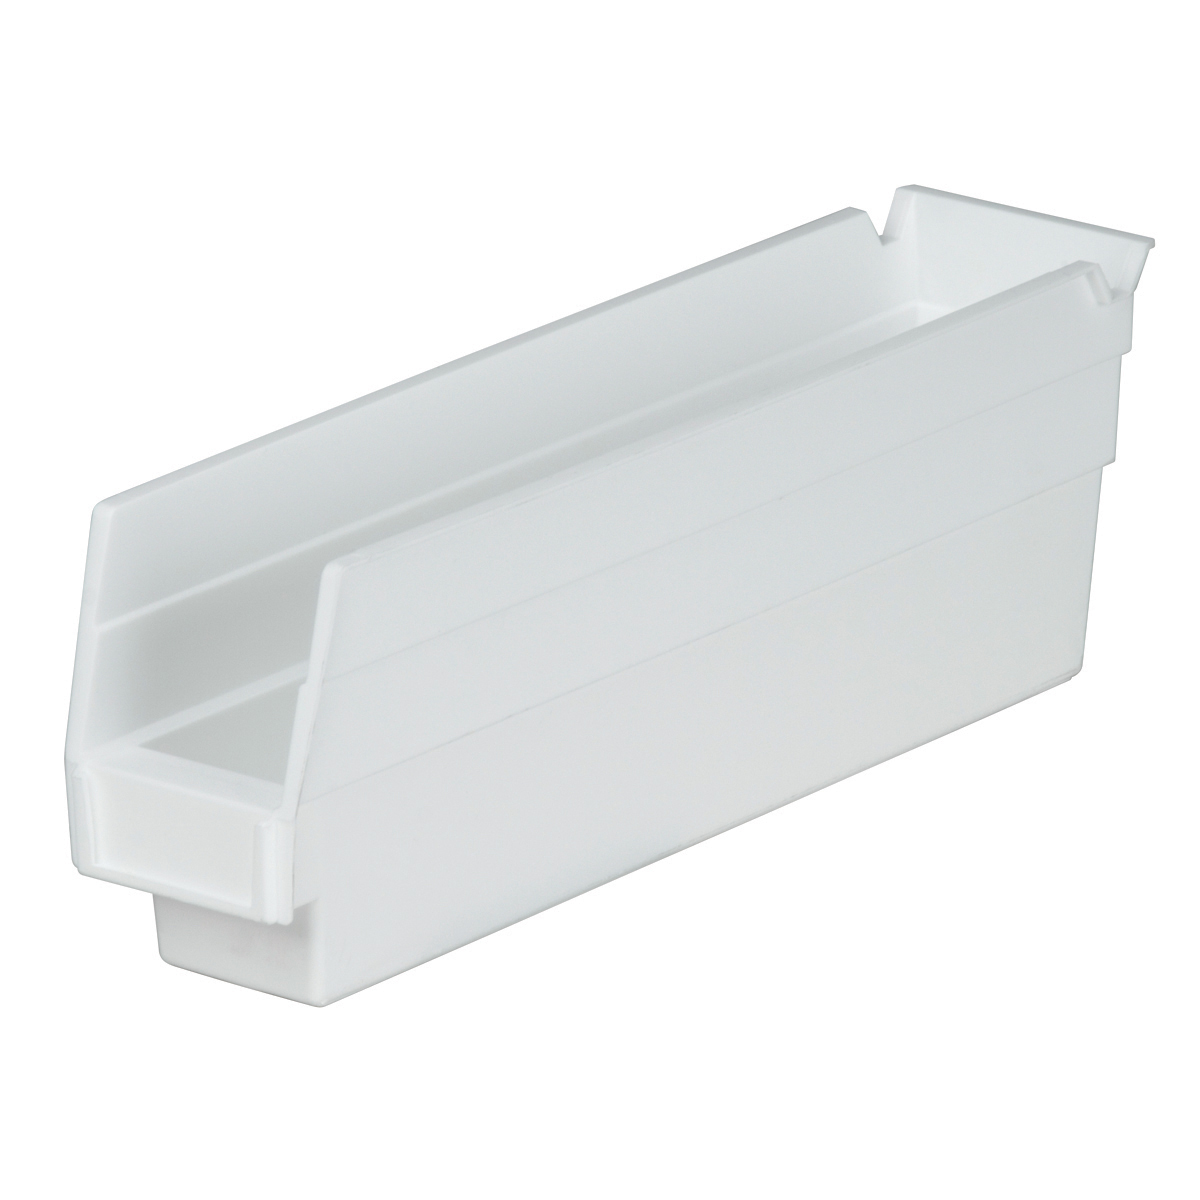 Shelf Bin 11-5/8 x 2-3/4 x 4, White (30110WHITE).  This item sold in carton quantities of 24.